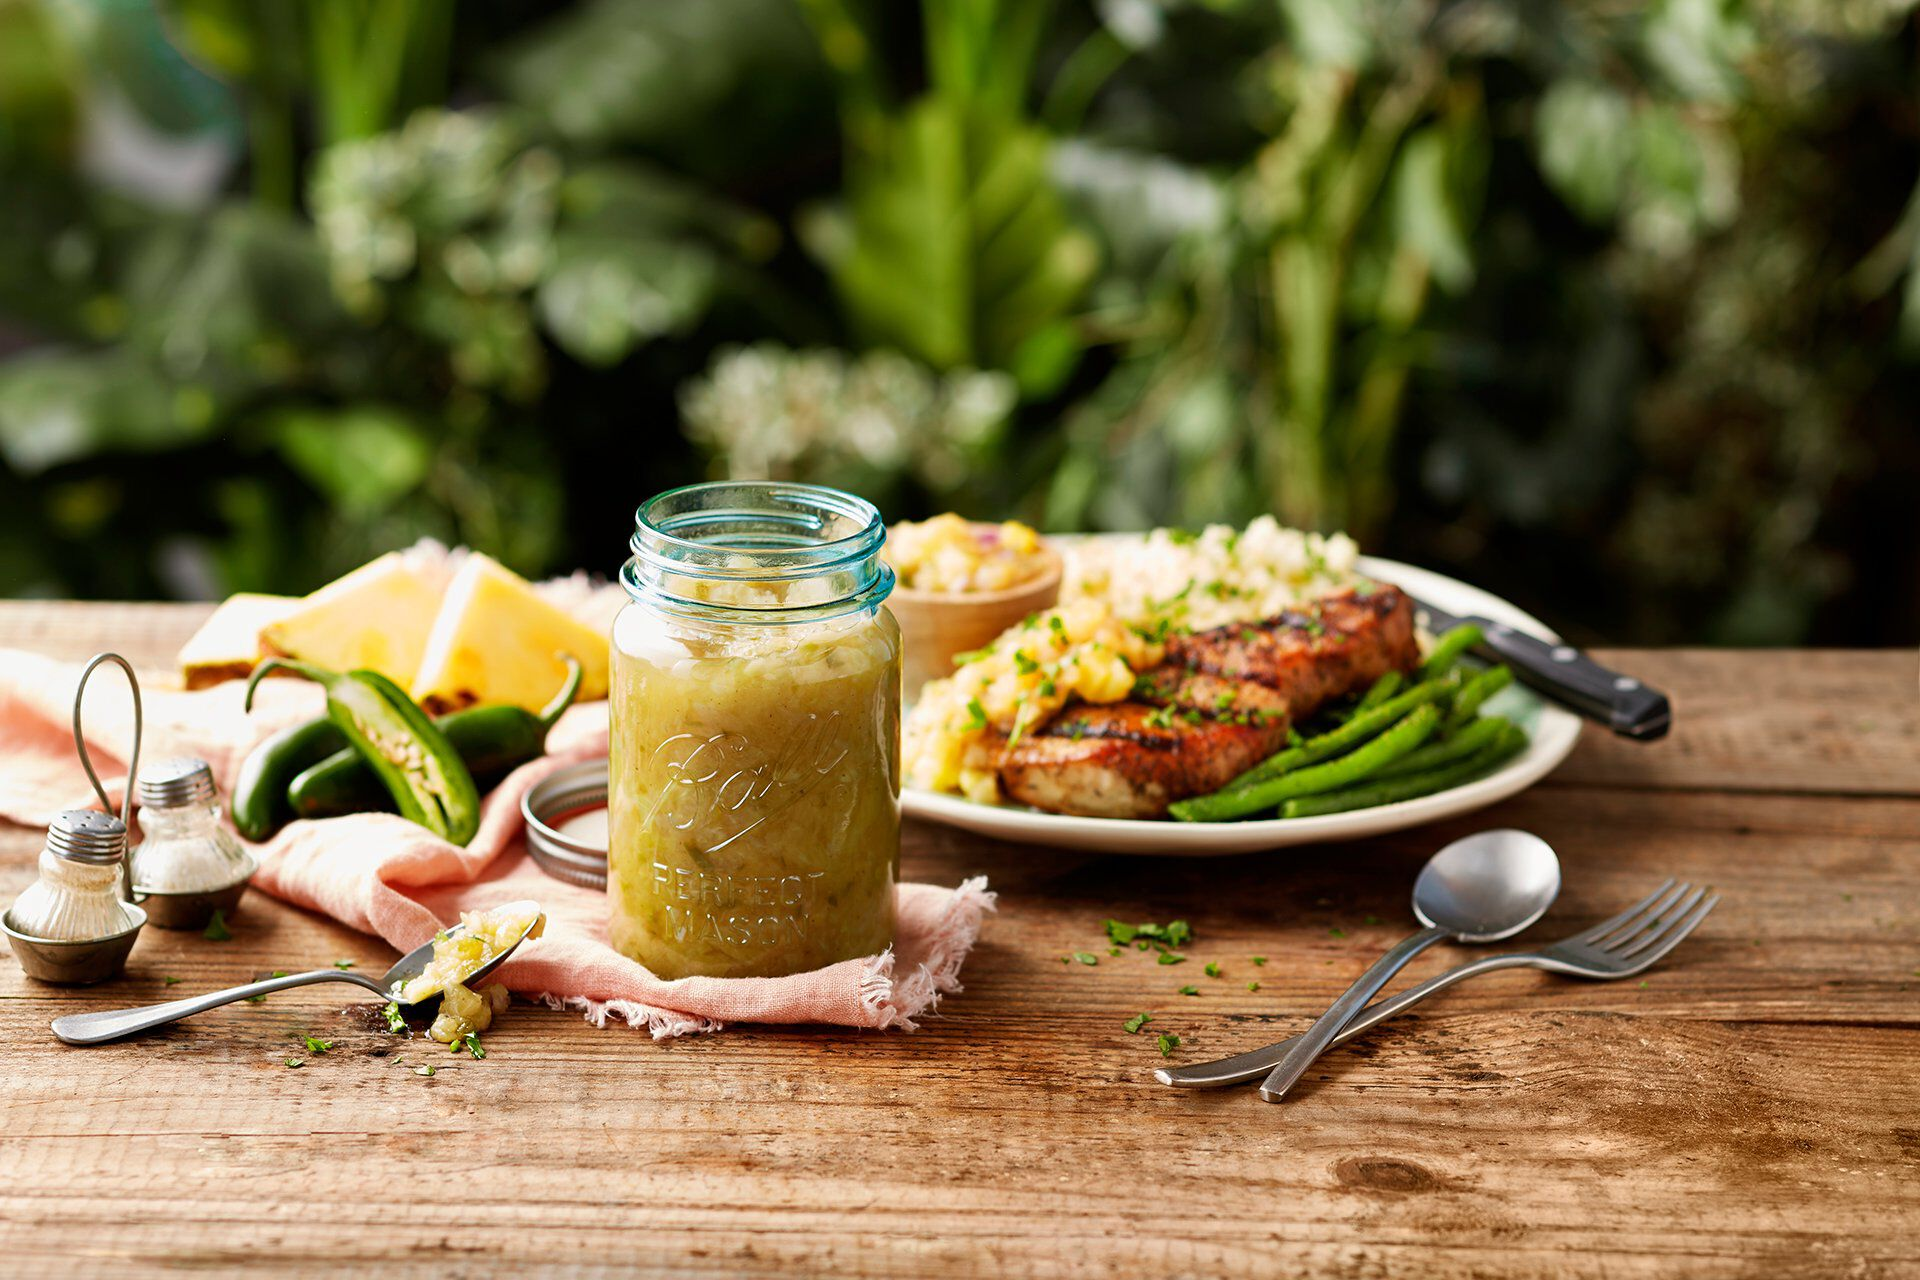 Mason jar and food on outdoor table